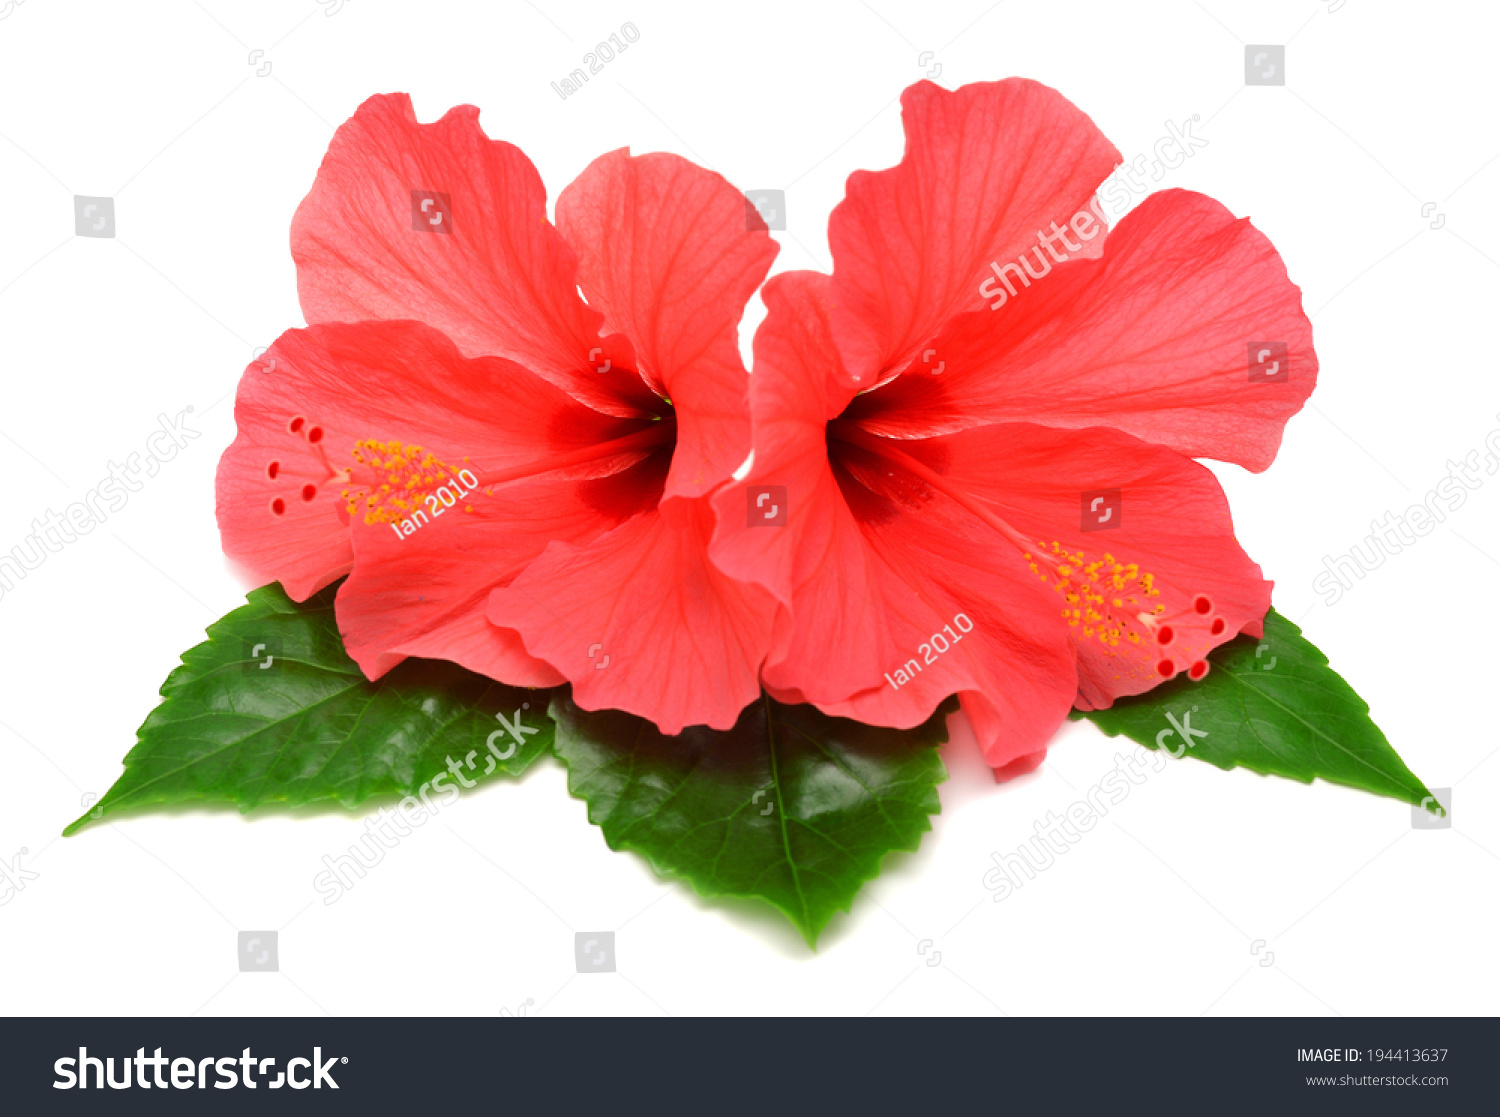 Postcard from hibiscus flowers isolated on white background ez canvas id 194413637 izmirmasajfo